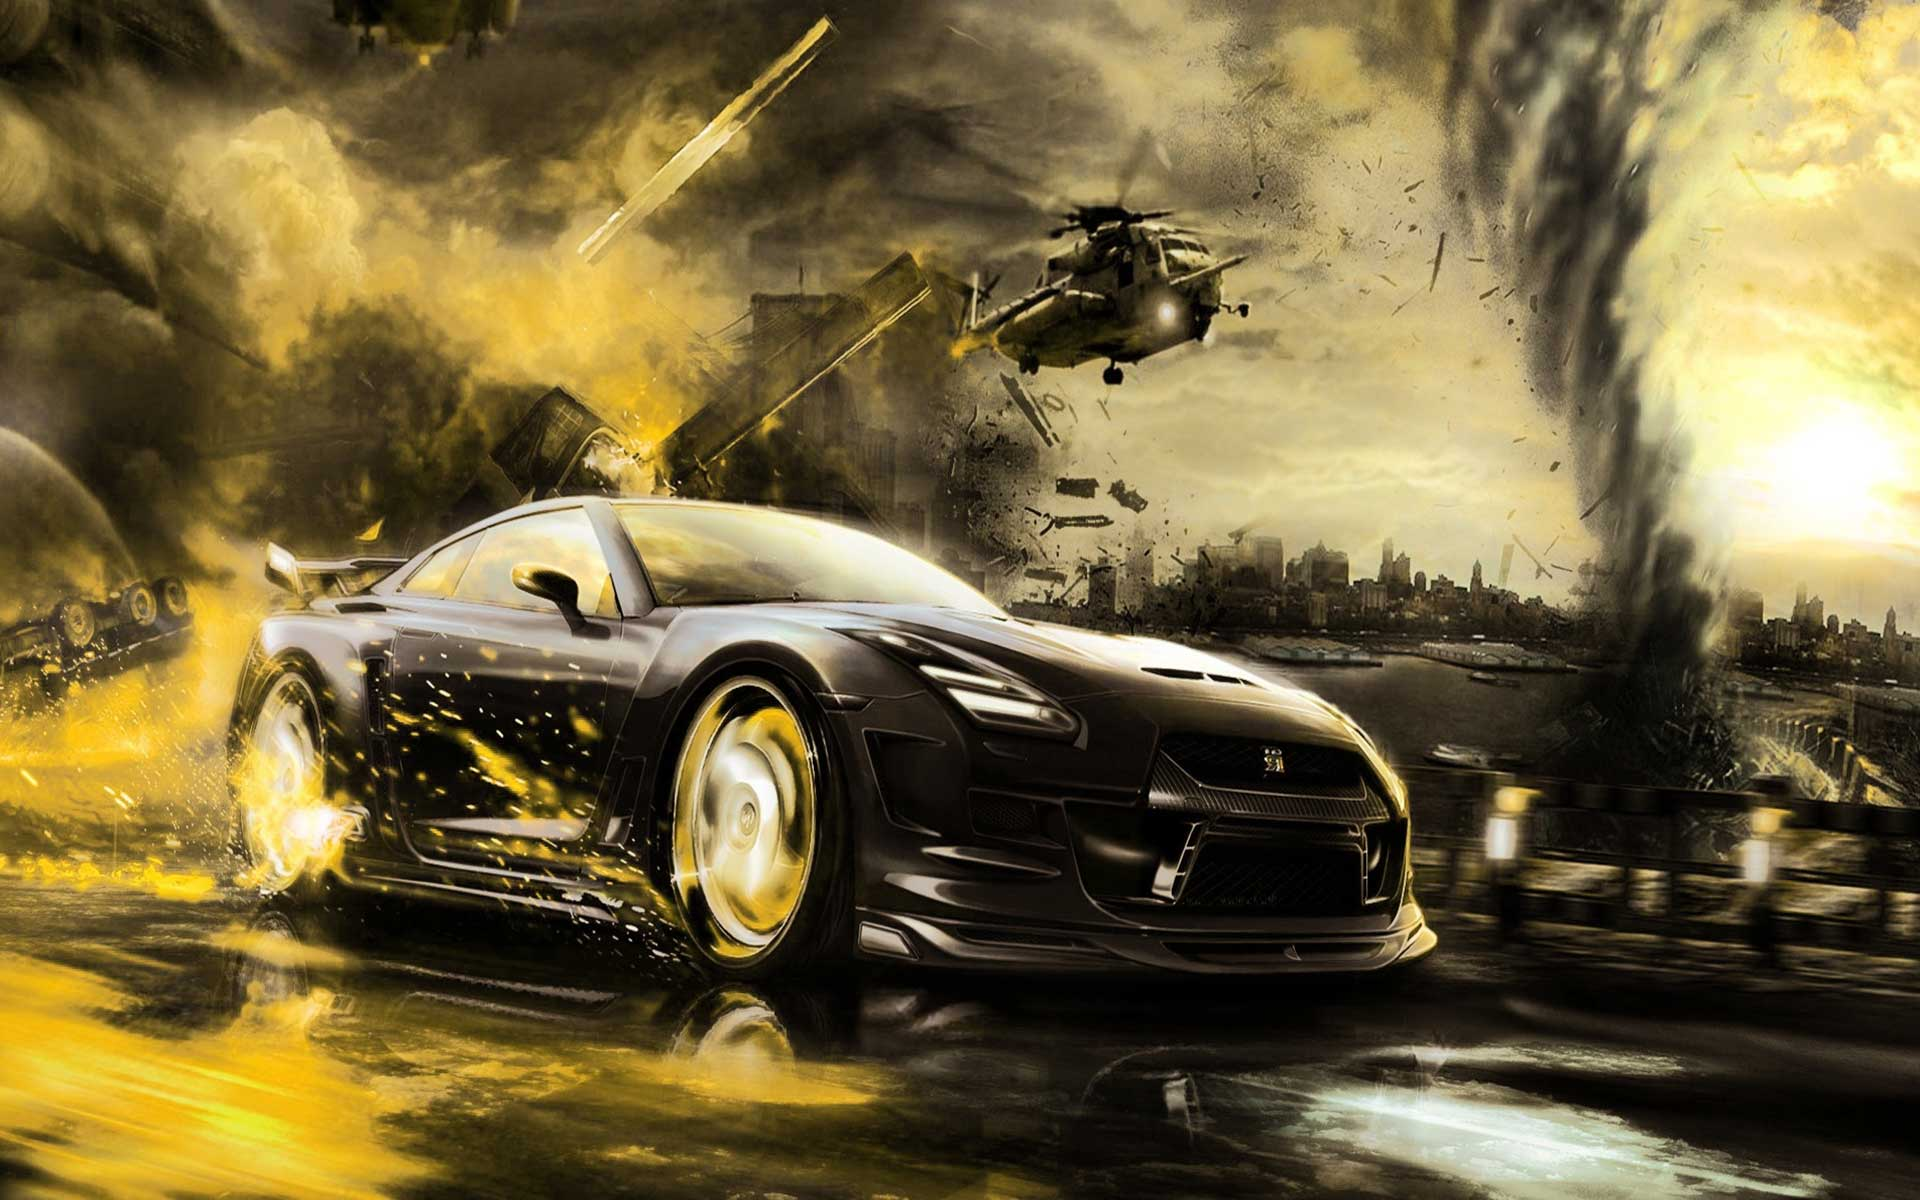 Really Cool Cars Wallpapers On Wallpaperdog